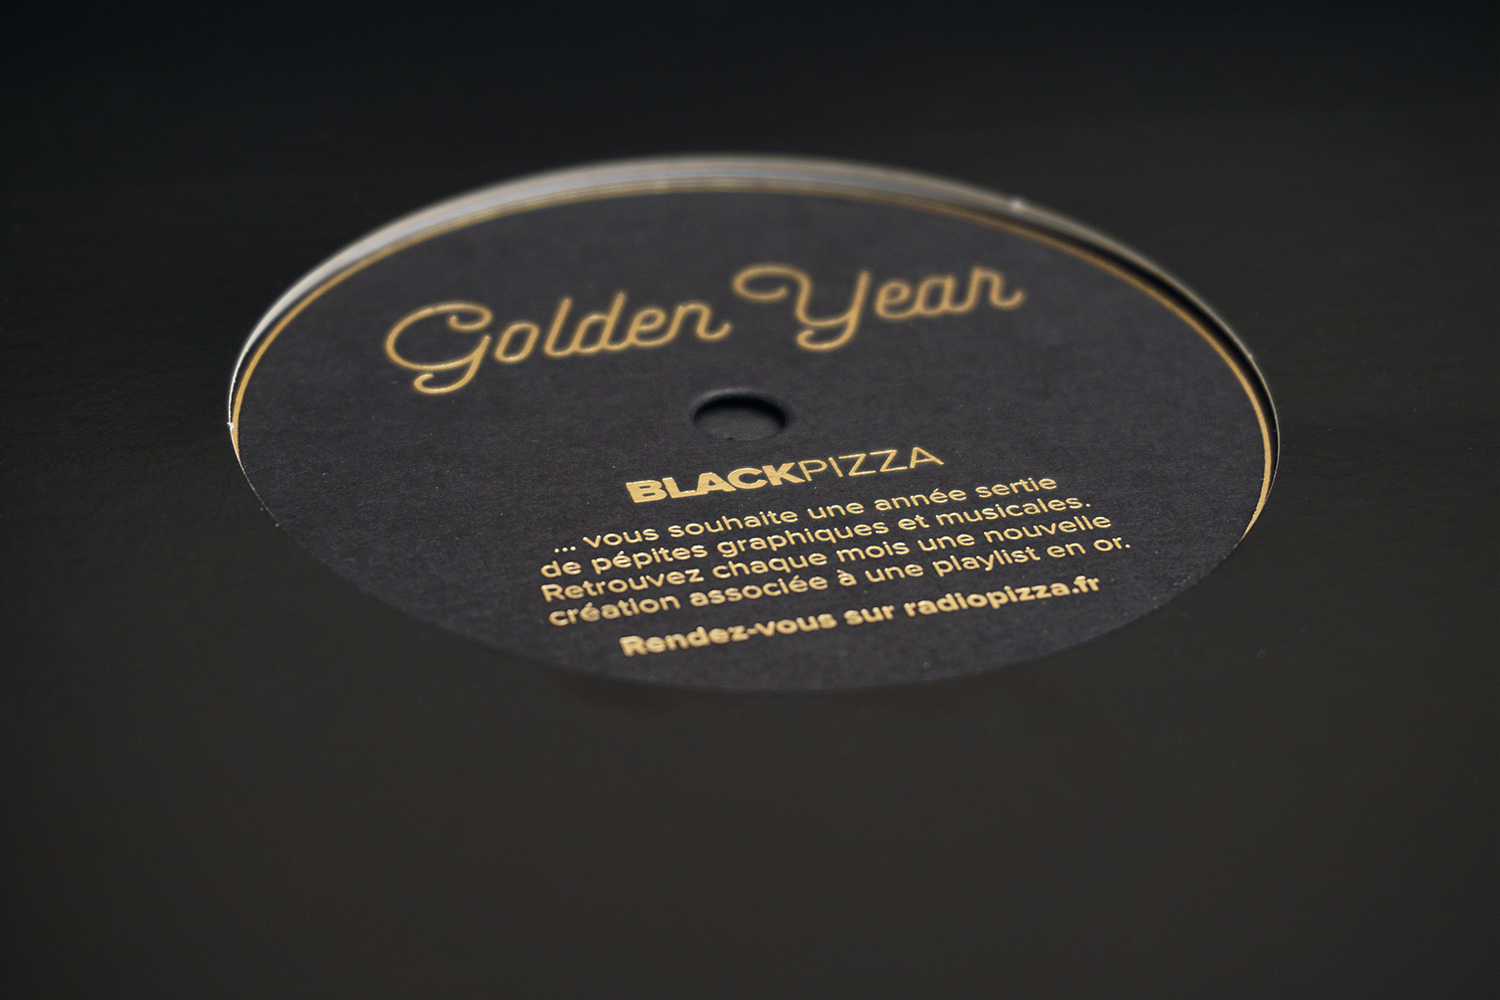 0002_Golden_Year_03